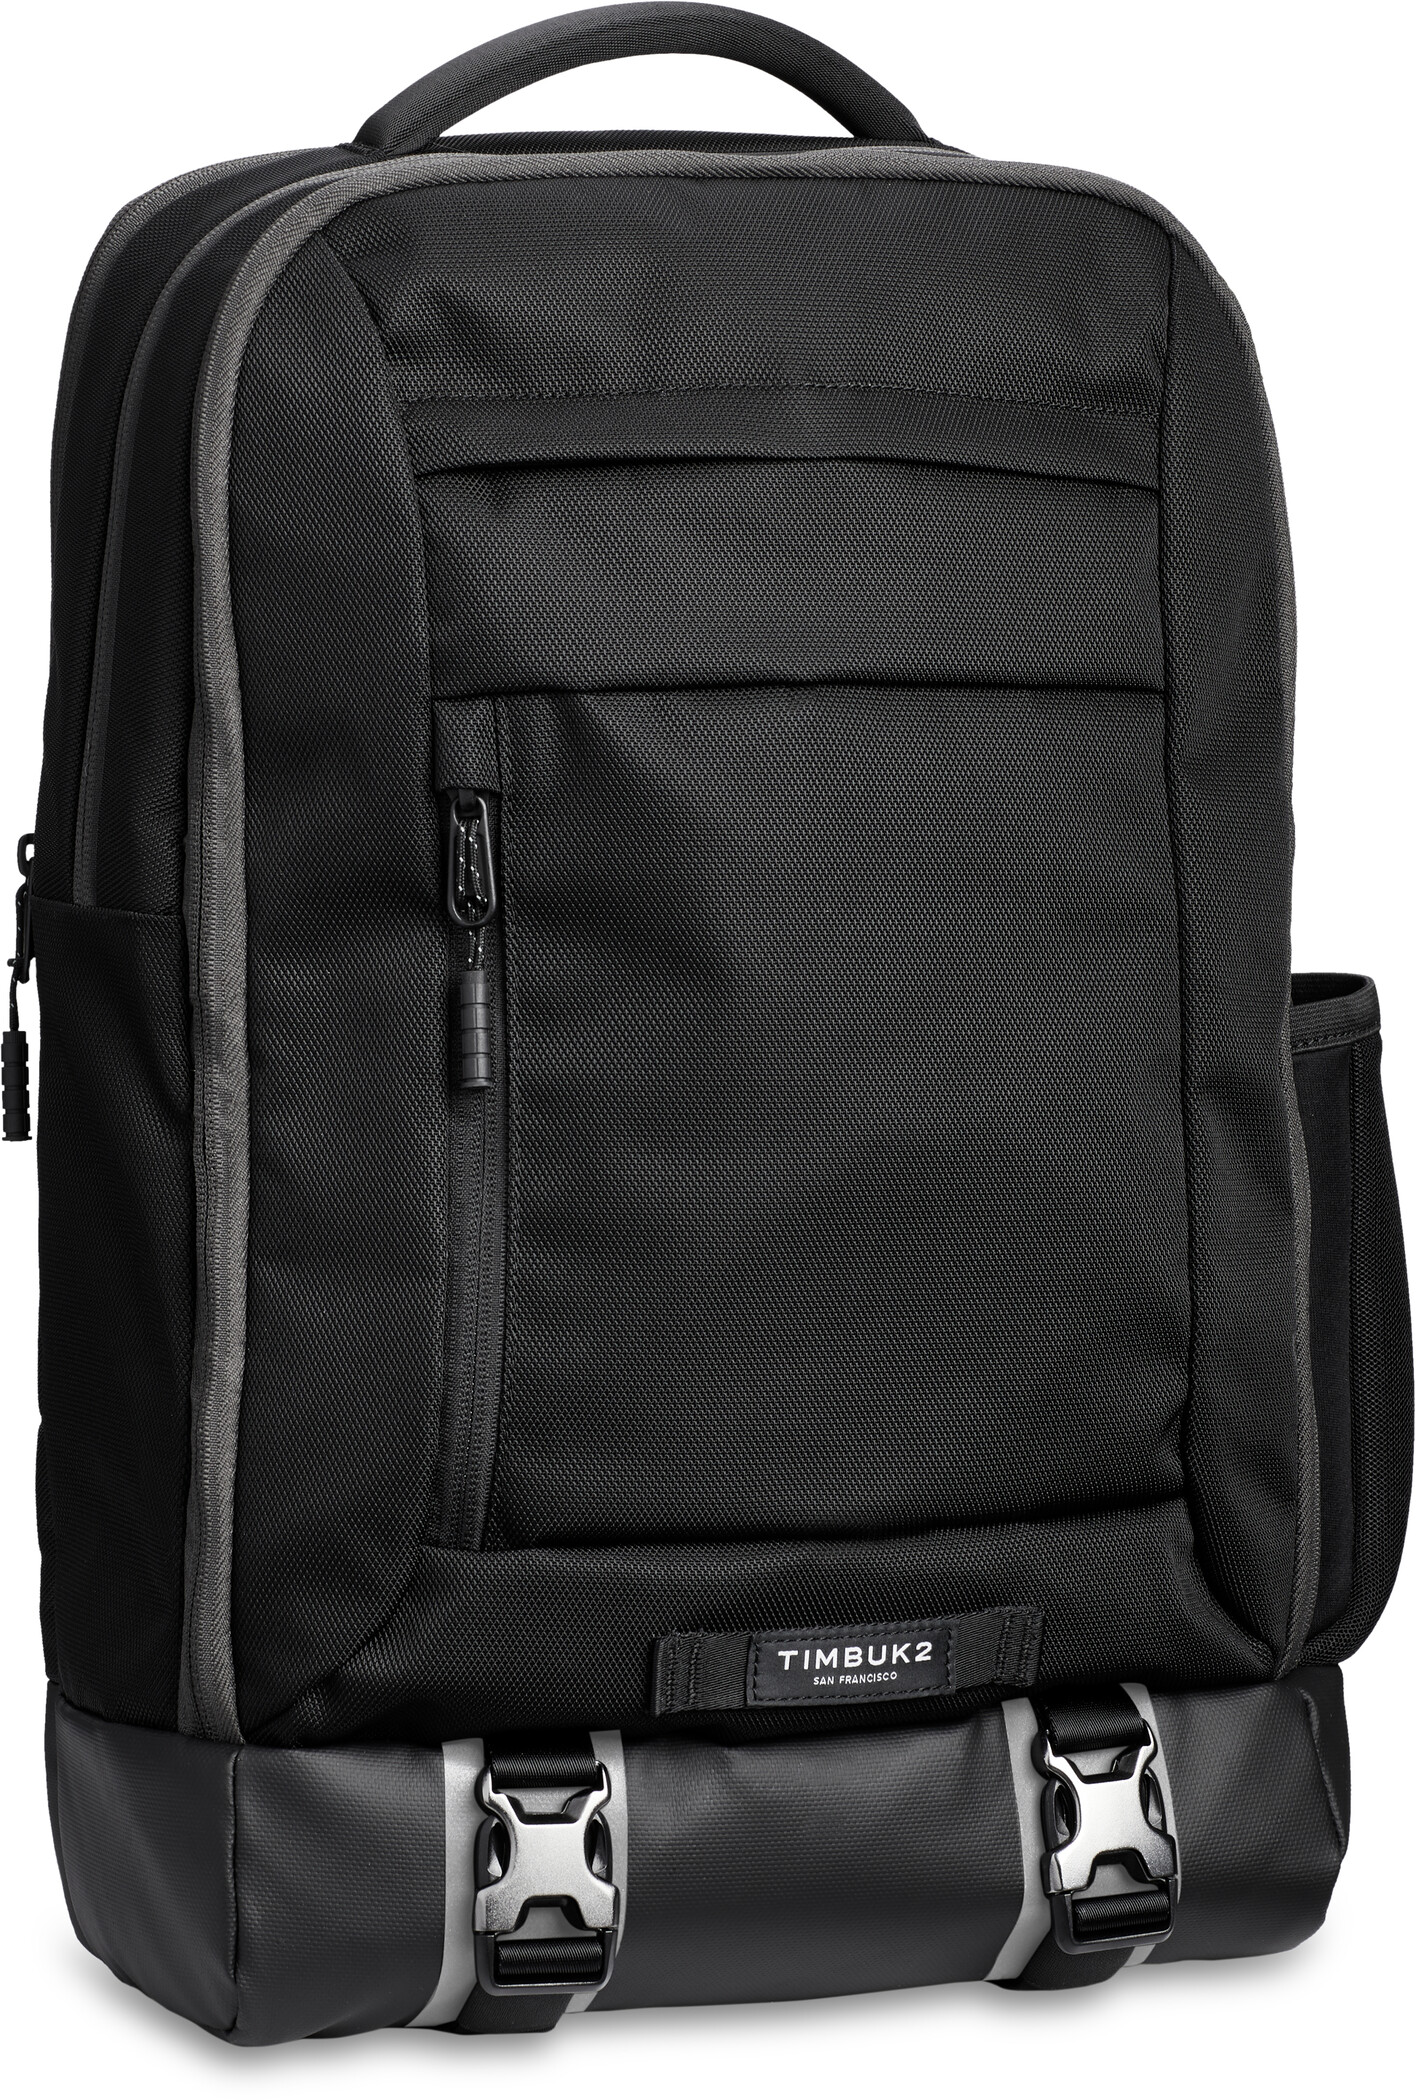 Timbuk2 The Authority DLX Pack, black deluxe (2019) | item_misc